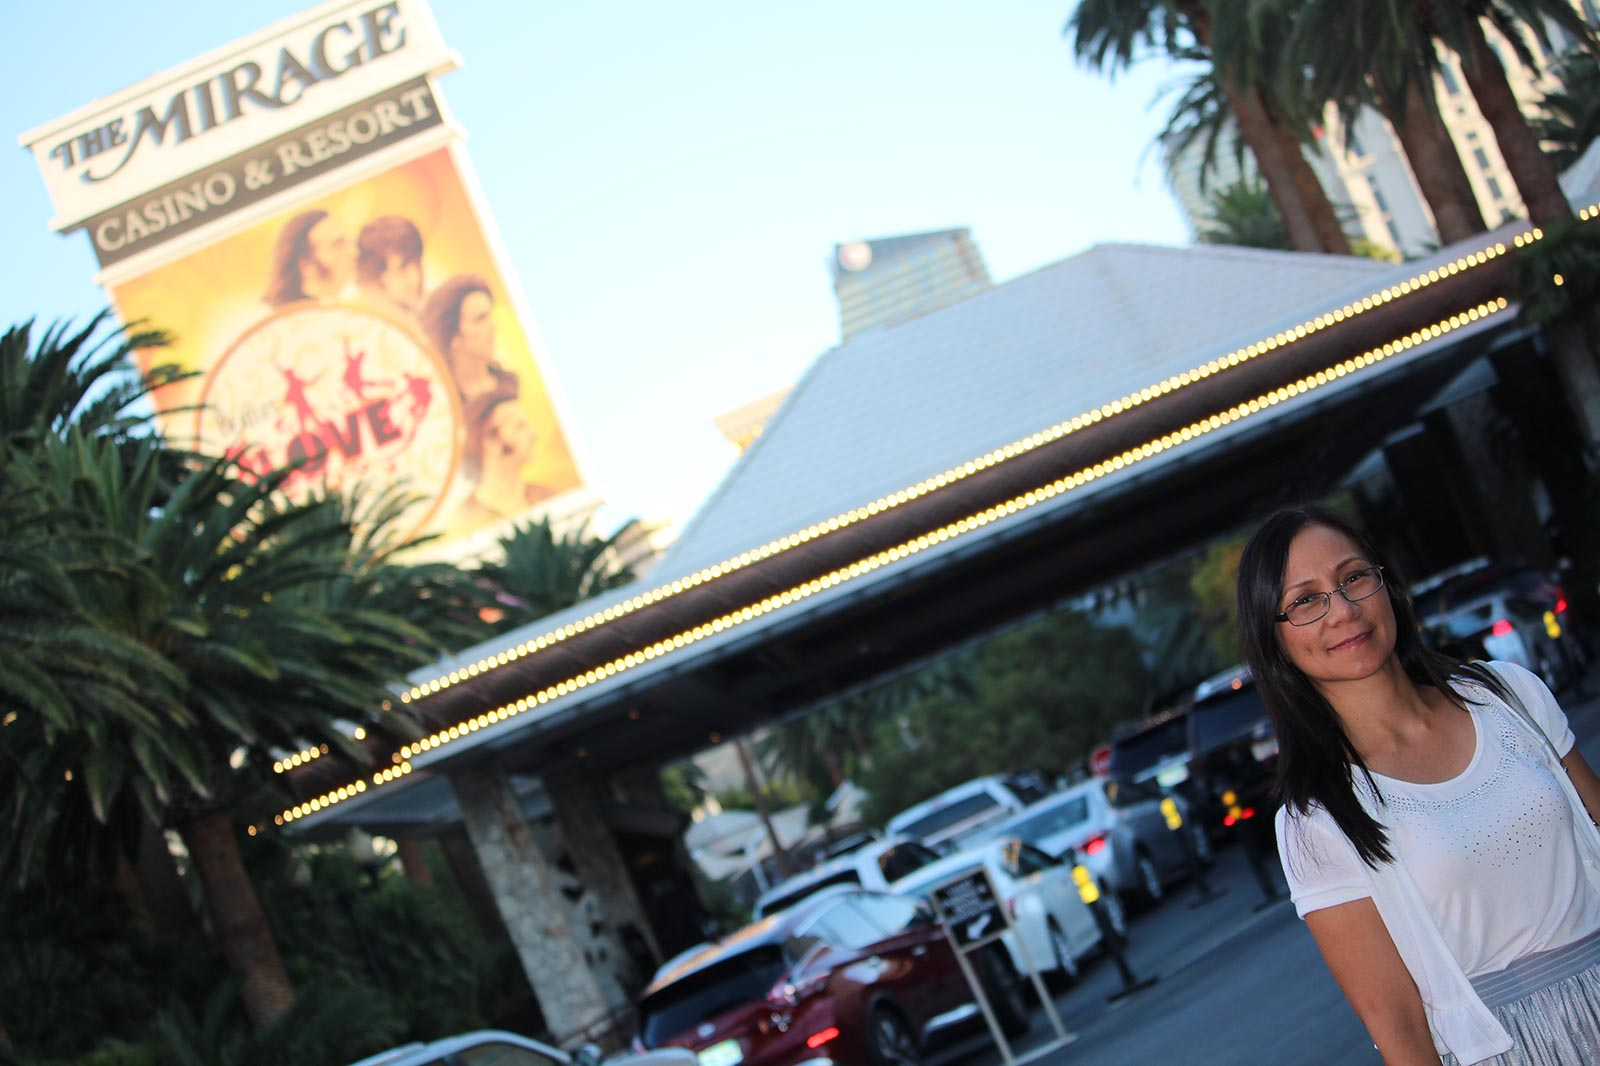 Judy goes to The Mirage Las Vegas